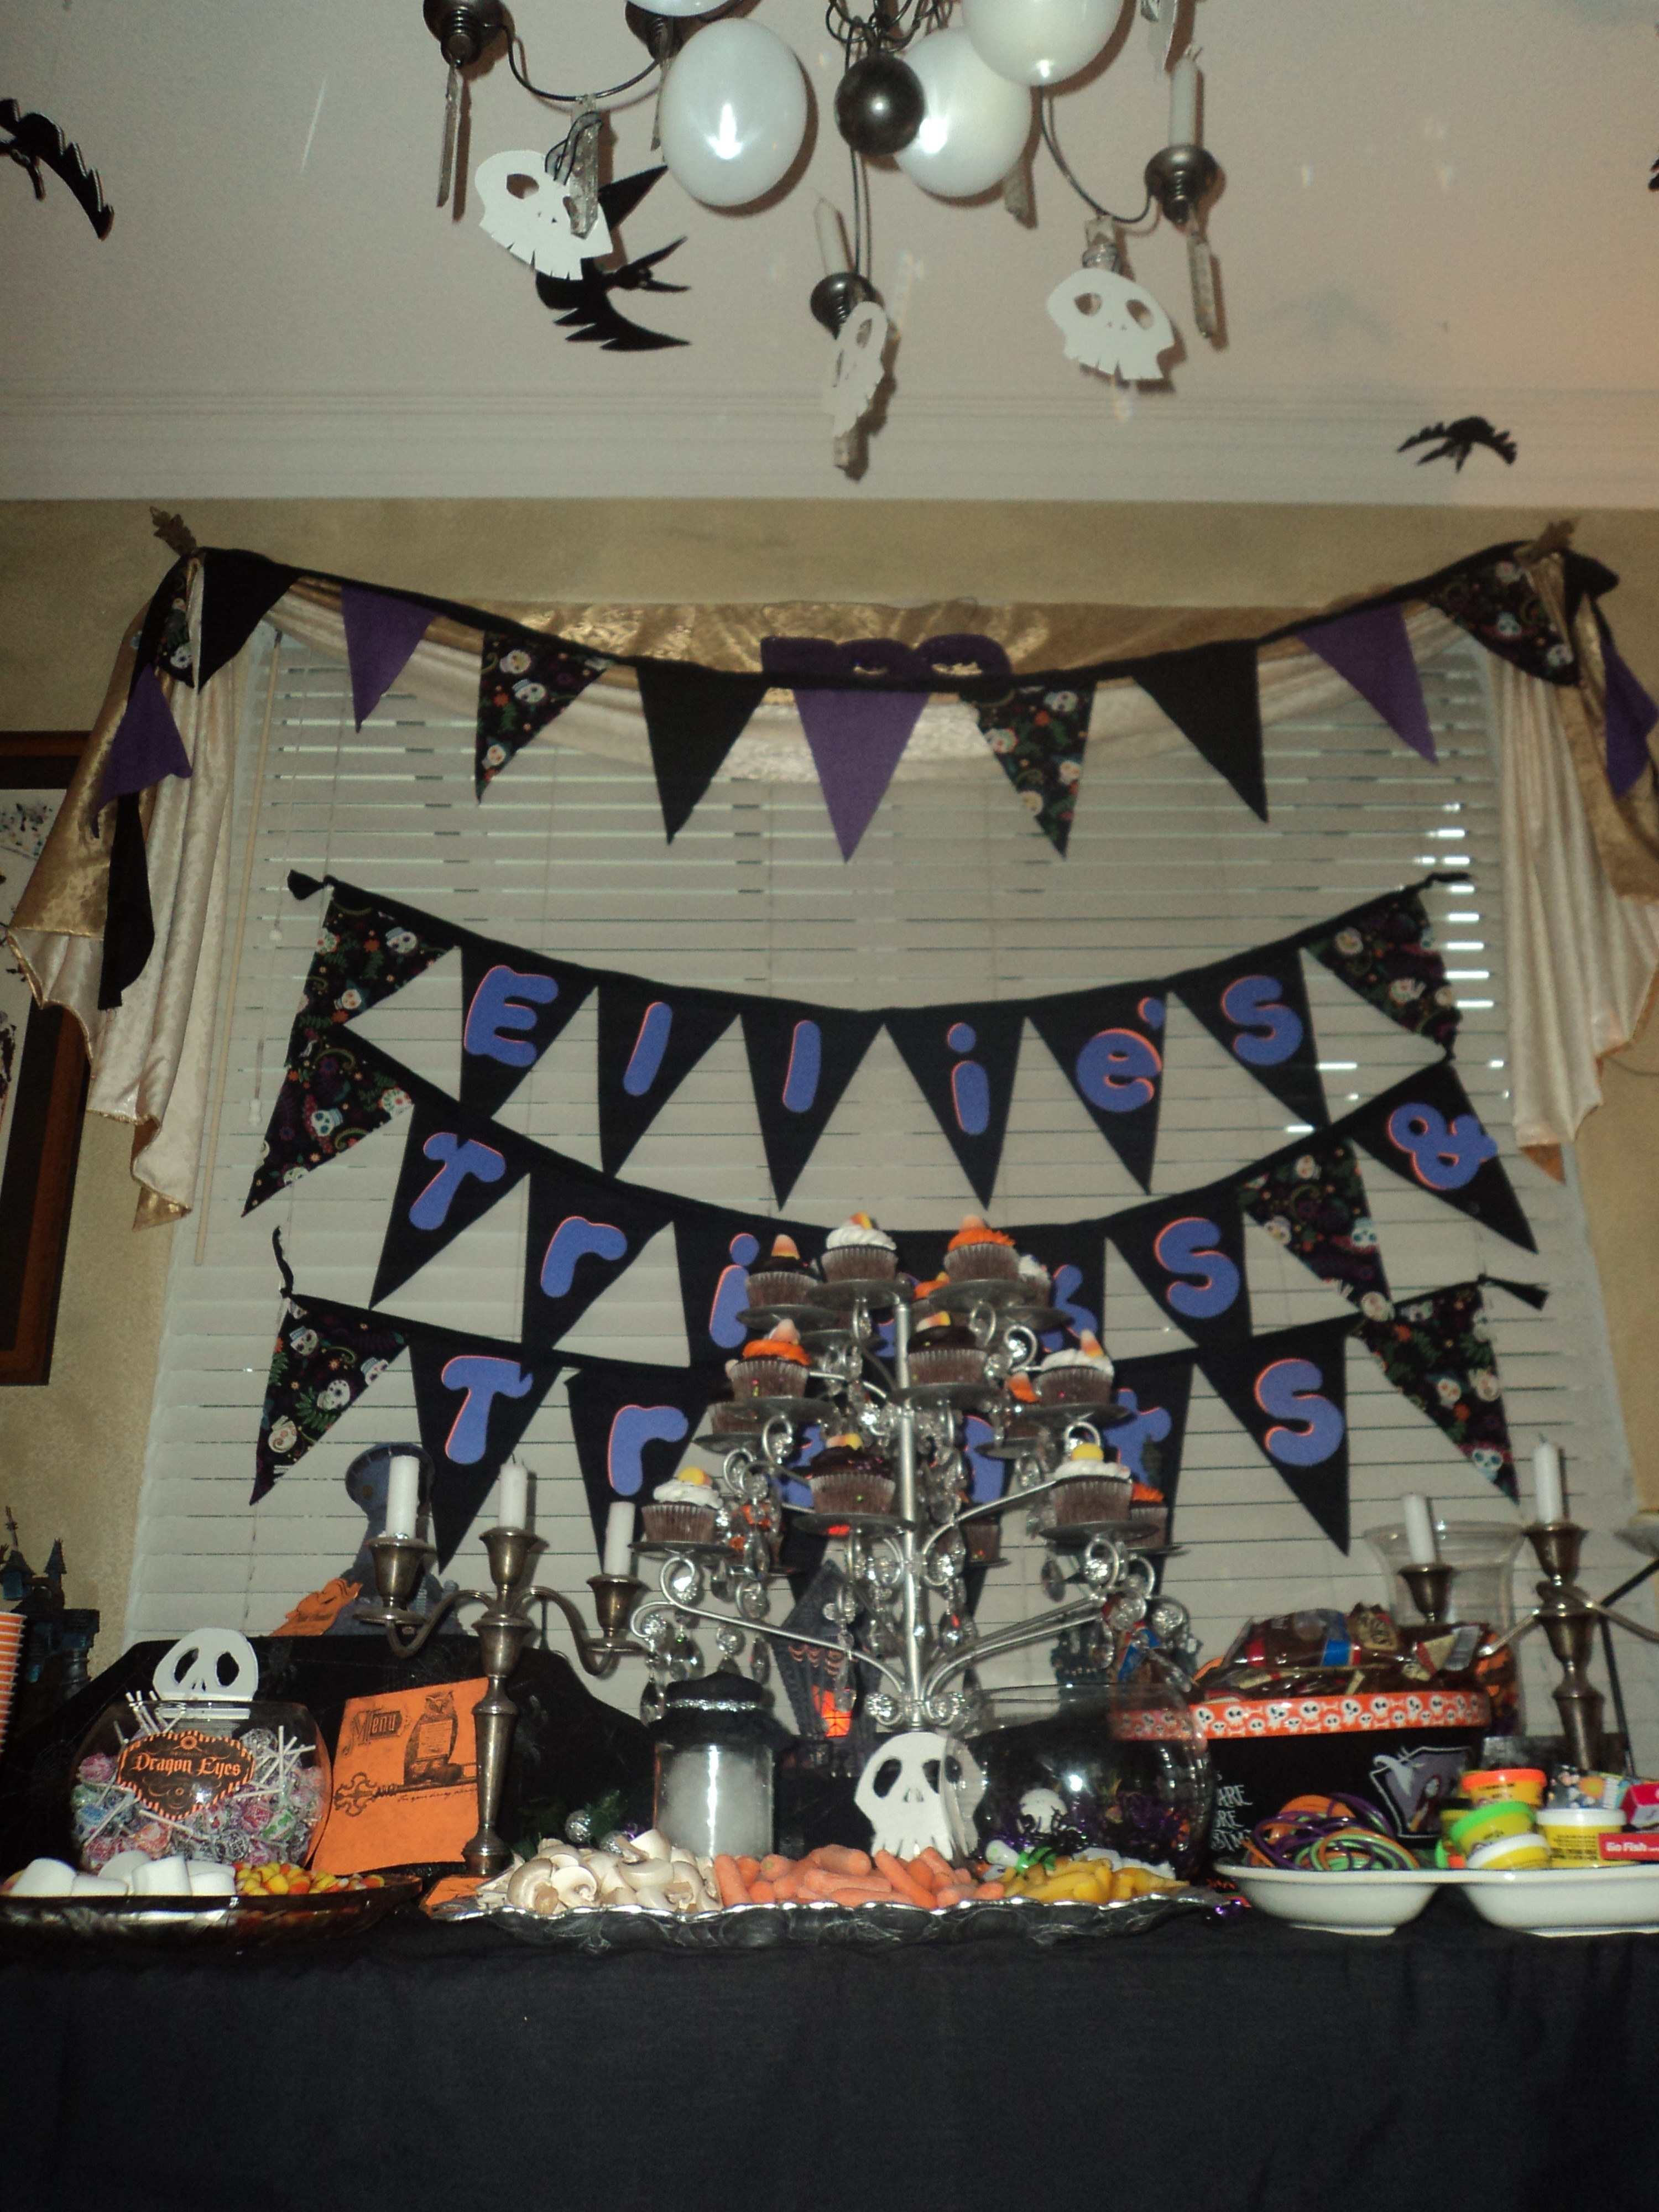 Best ideas about Nightmare Before Christmas Birthday Decorations . Save or Pin How to throw a girls Nightmare Before Christmas Party Now.